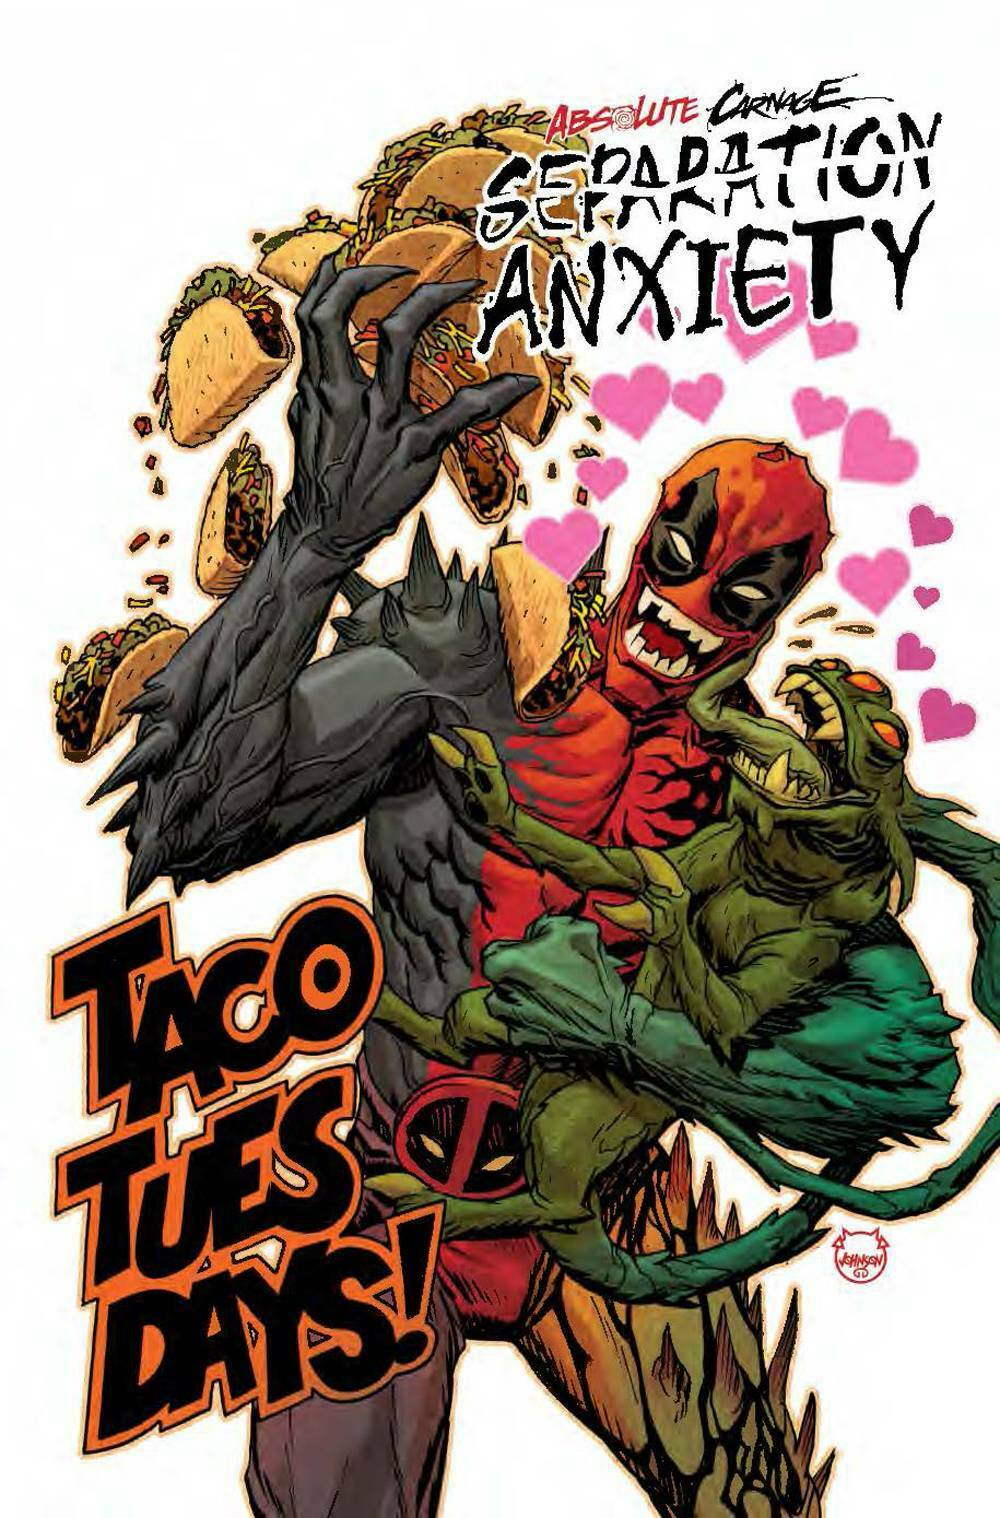 ABSOLUTE CARNAGE SEPARATION ANXIETY #1 1:25 JOHNSON CODEX VARIANT (2019) VF/NM MARVEL